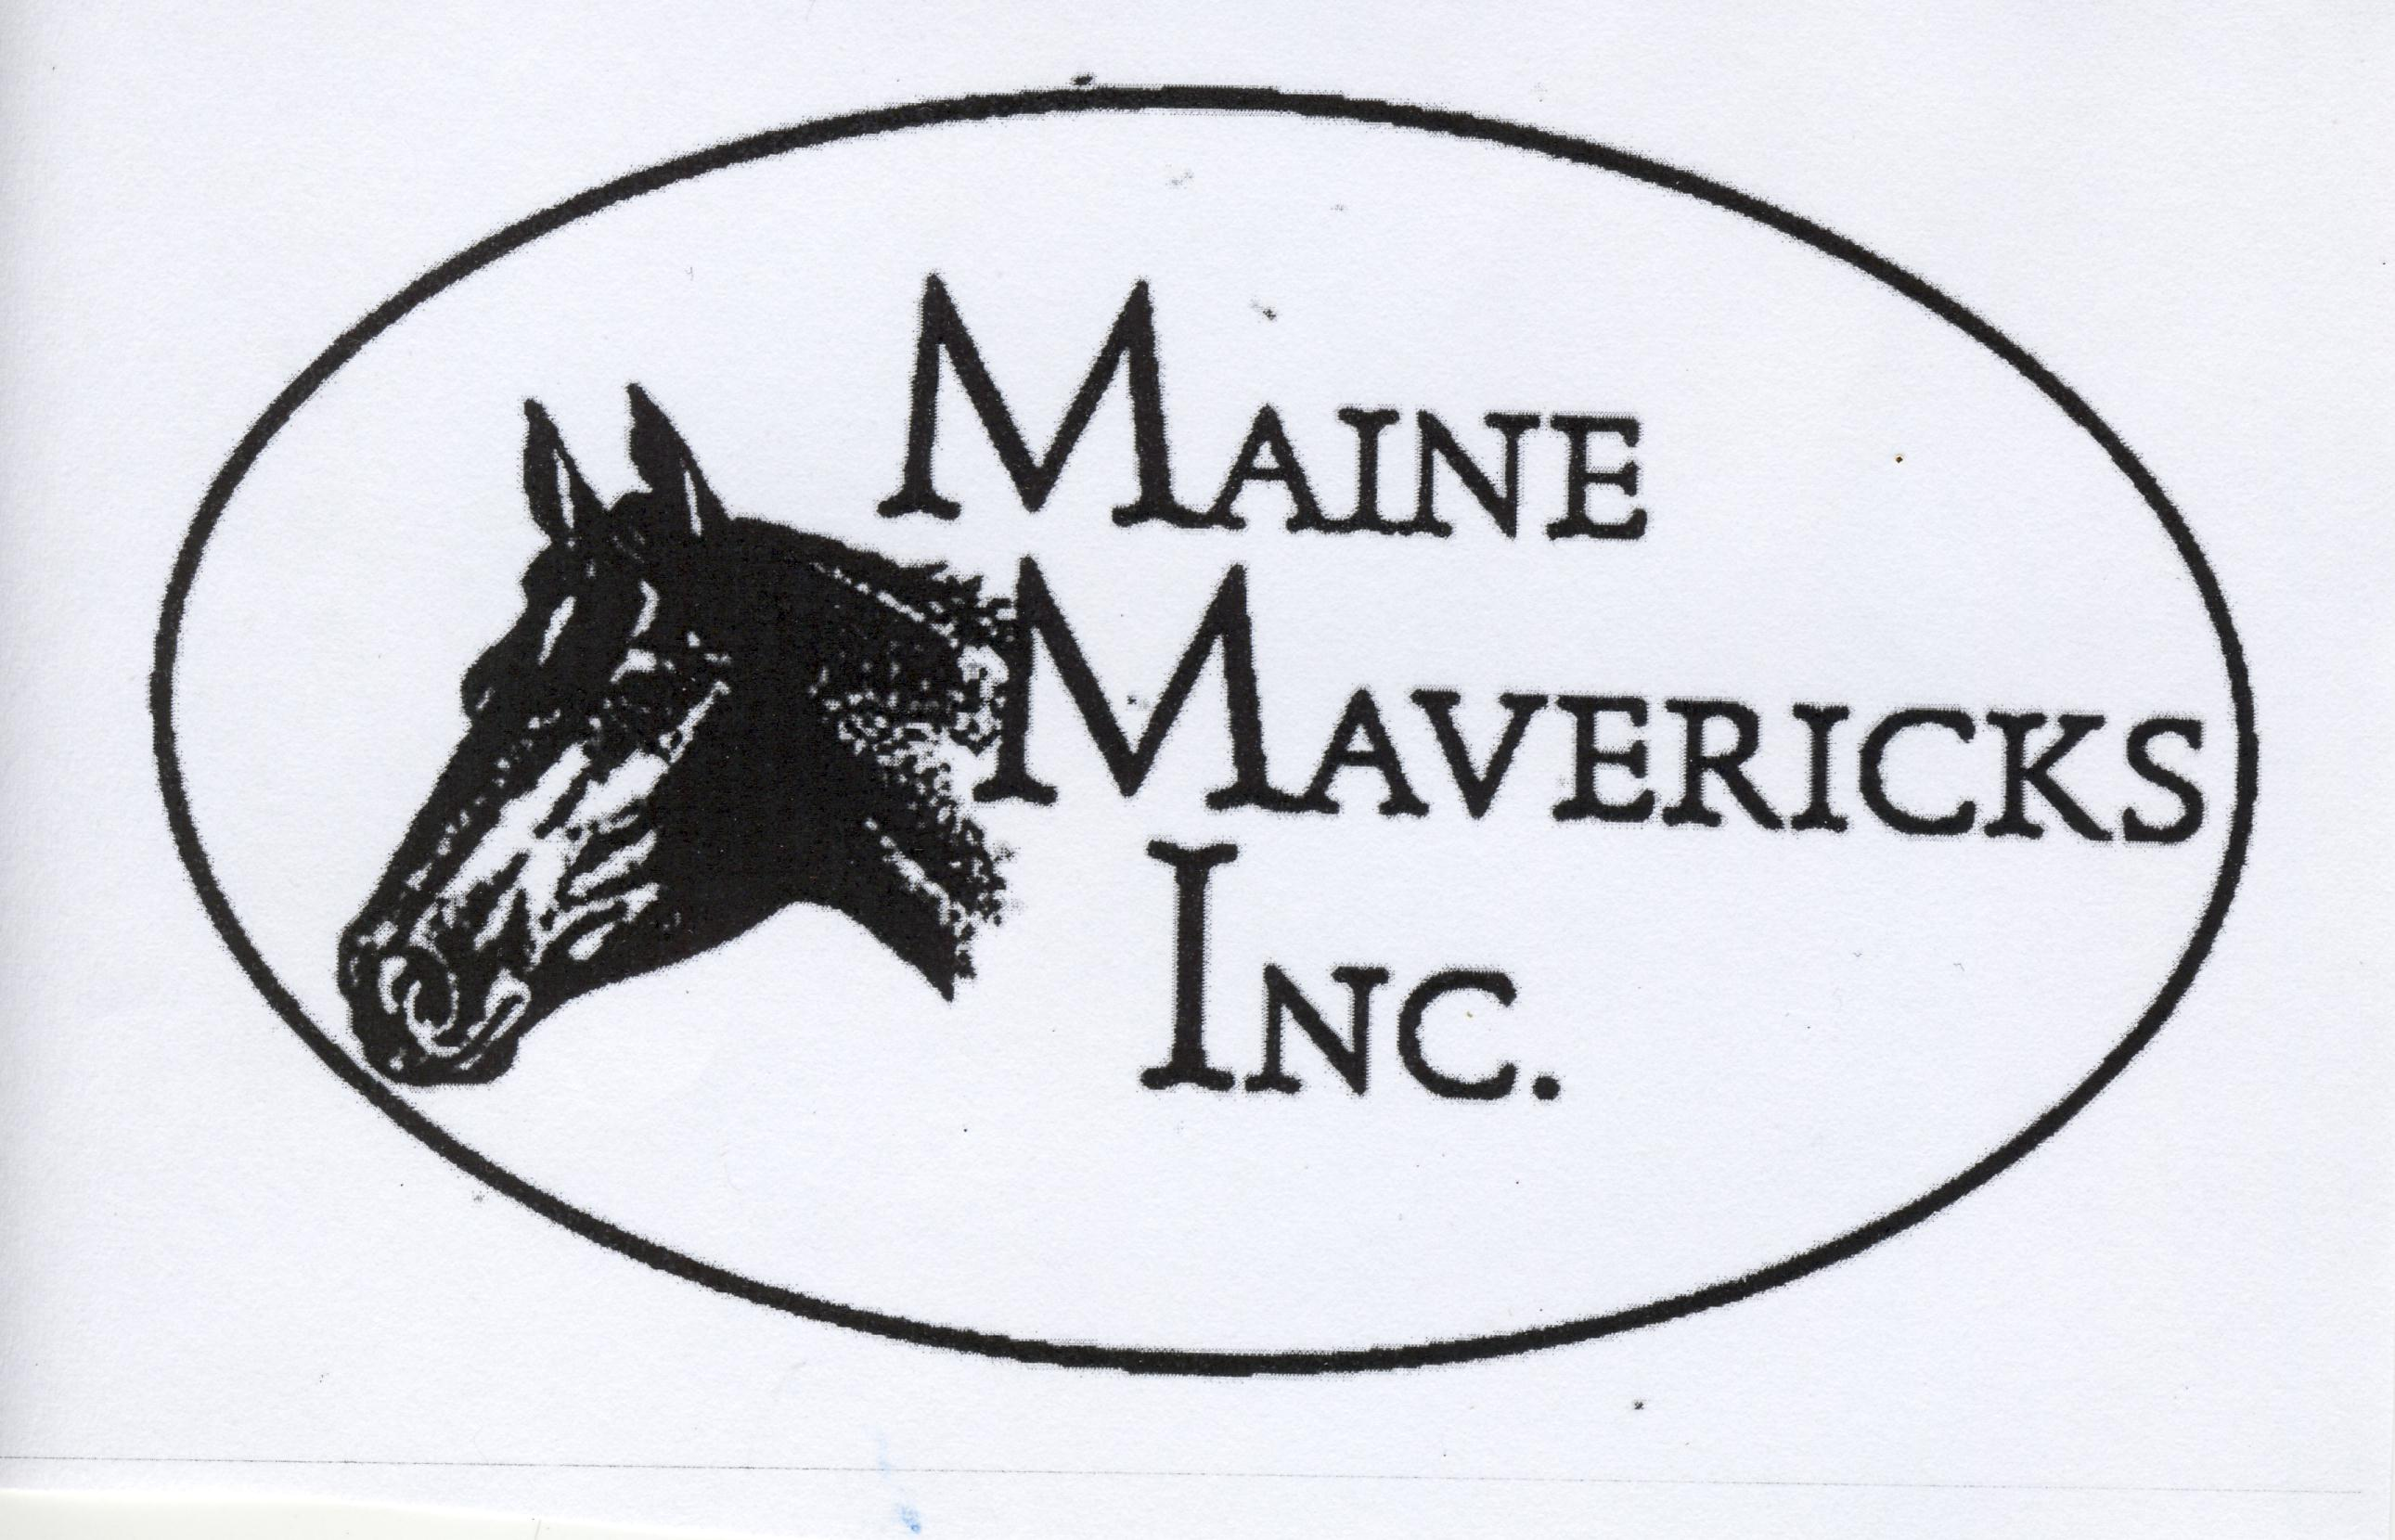 mainemavericks-old logo